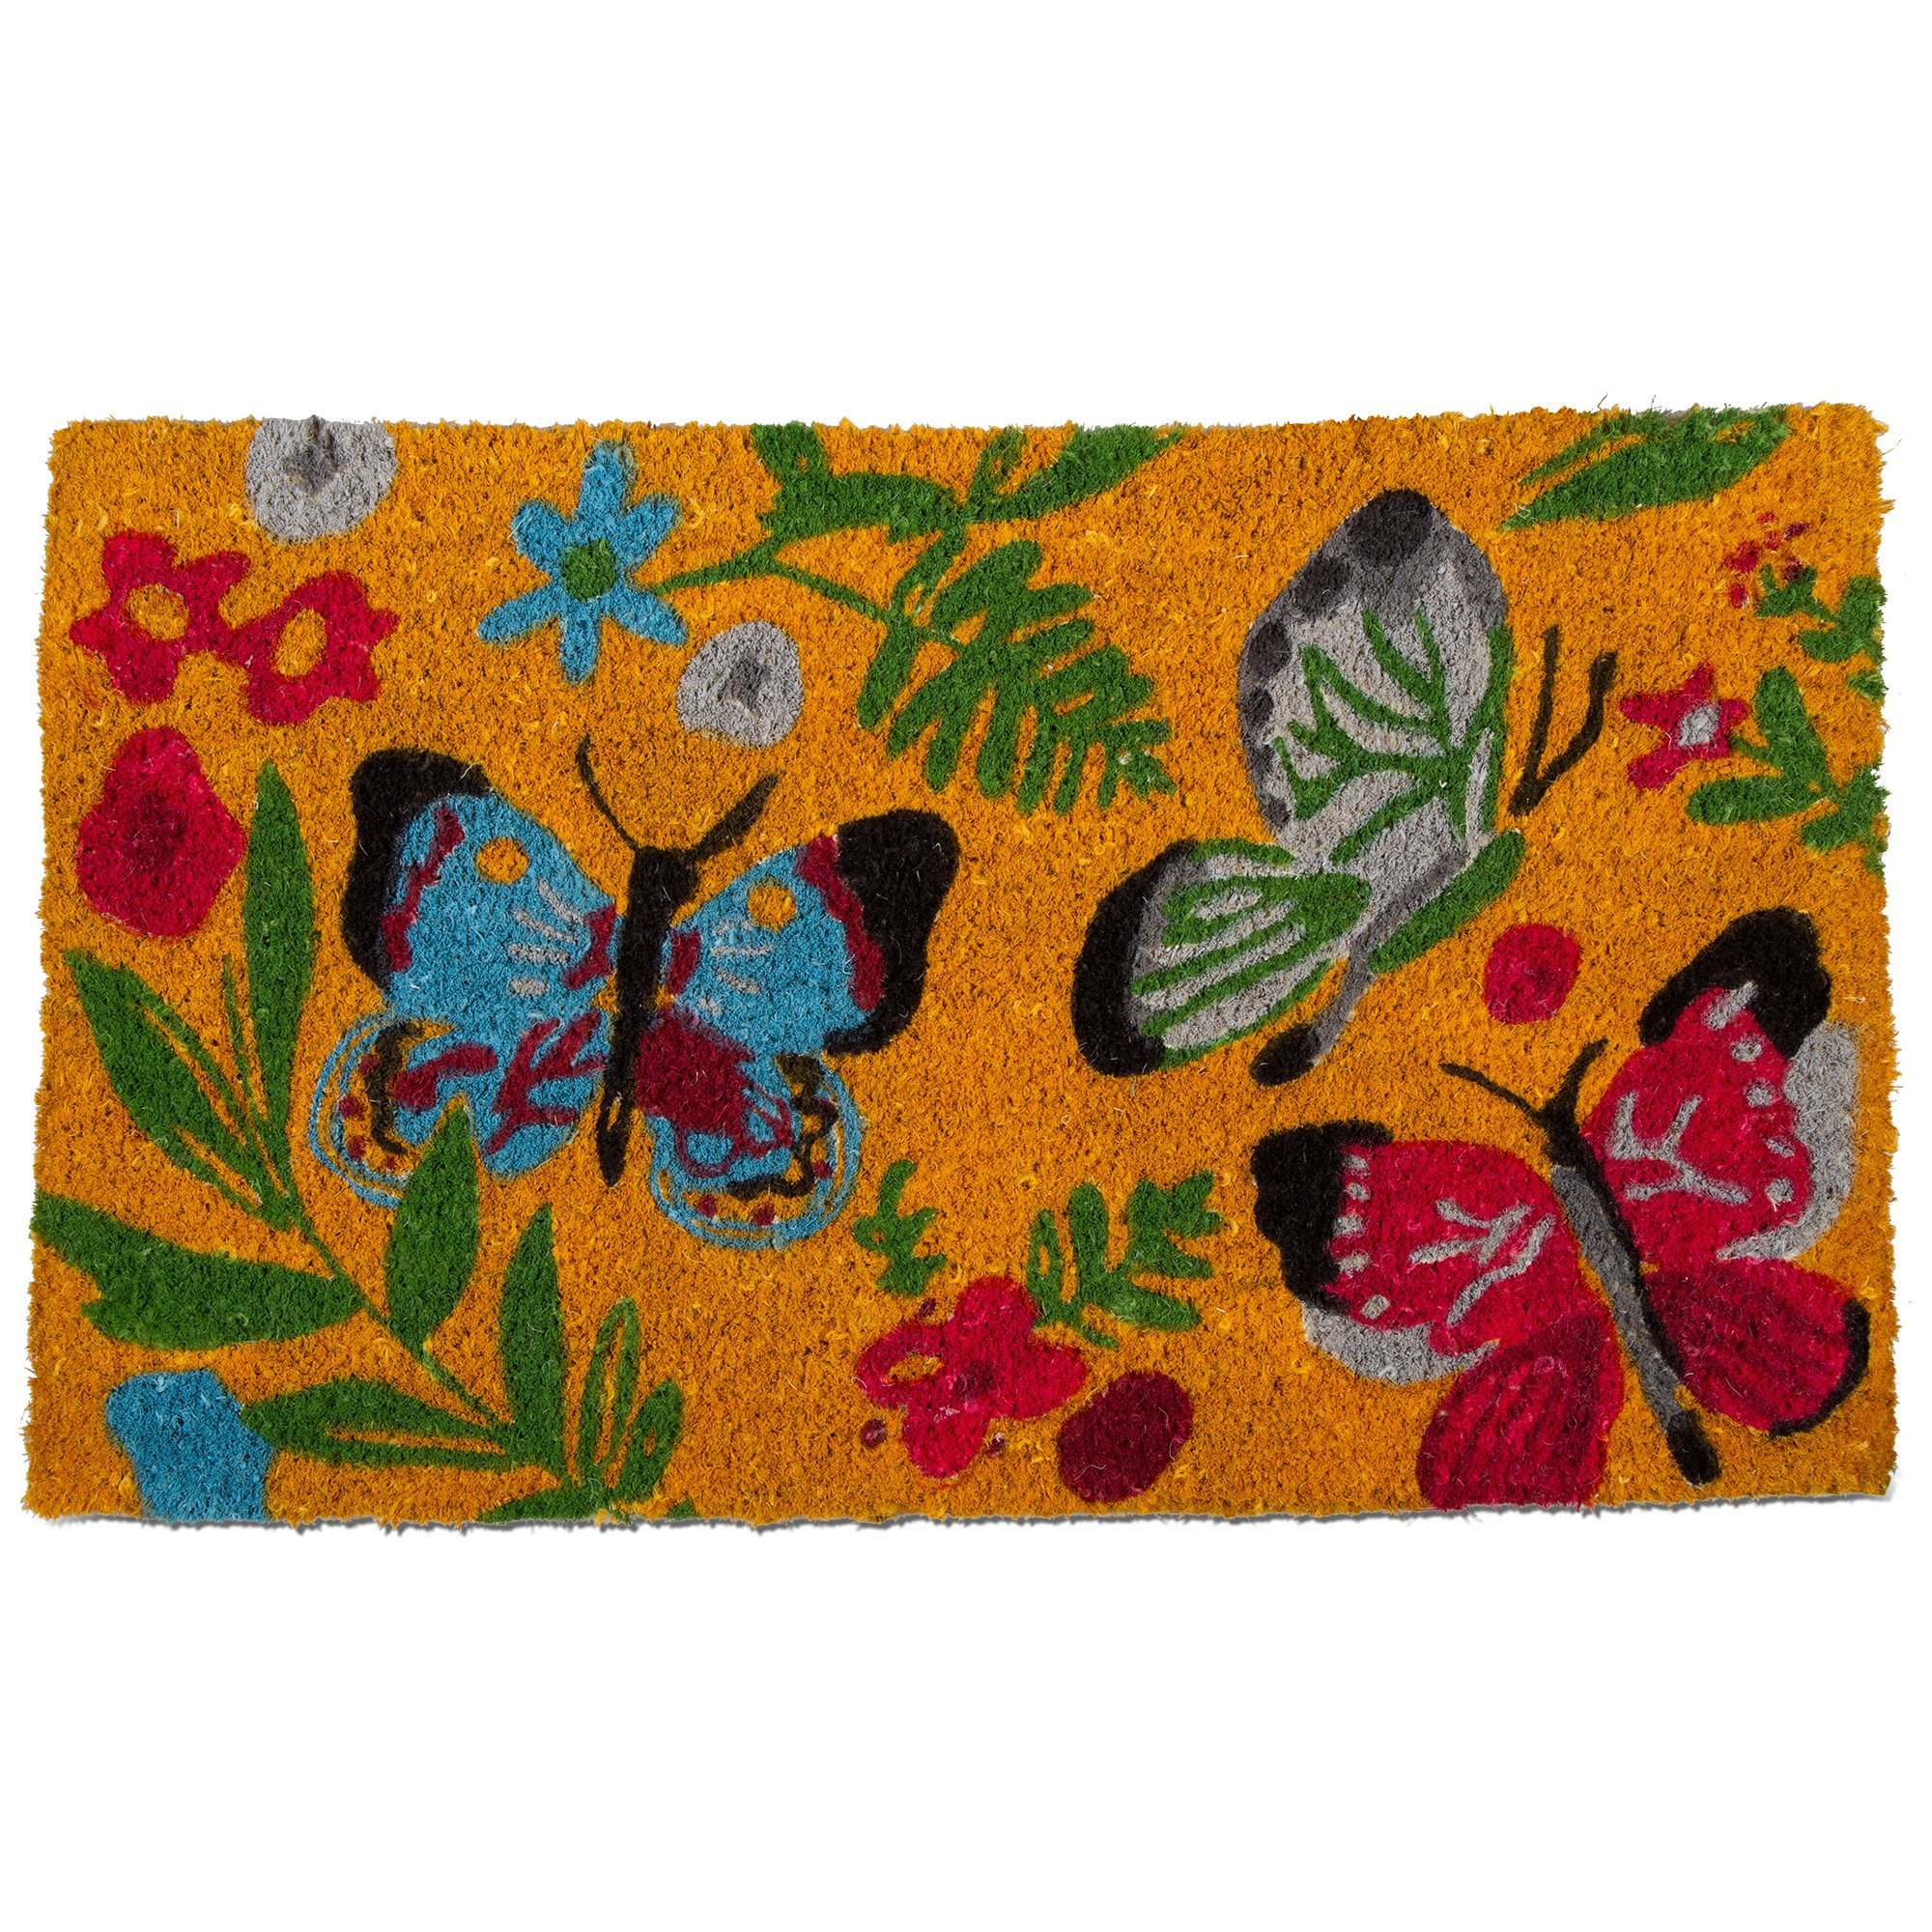 tag - Sunshine Butterfly Coir Mat, Decorative All-Season Mat for the Front Porch, Patio or Entryway, Multi by tag